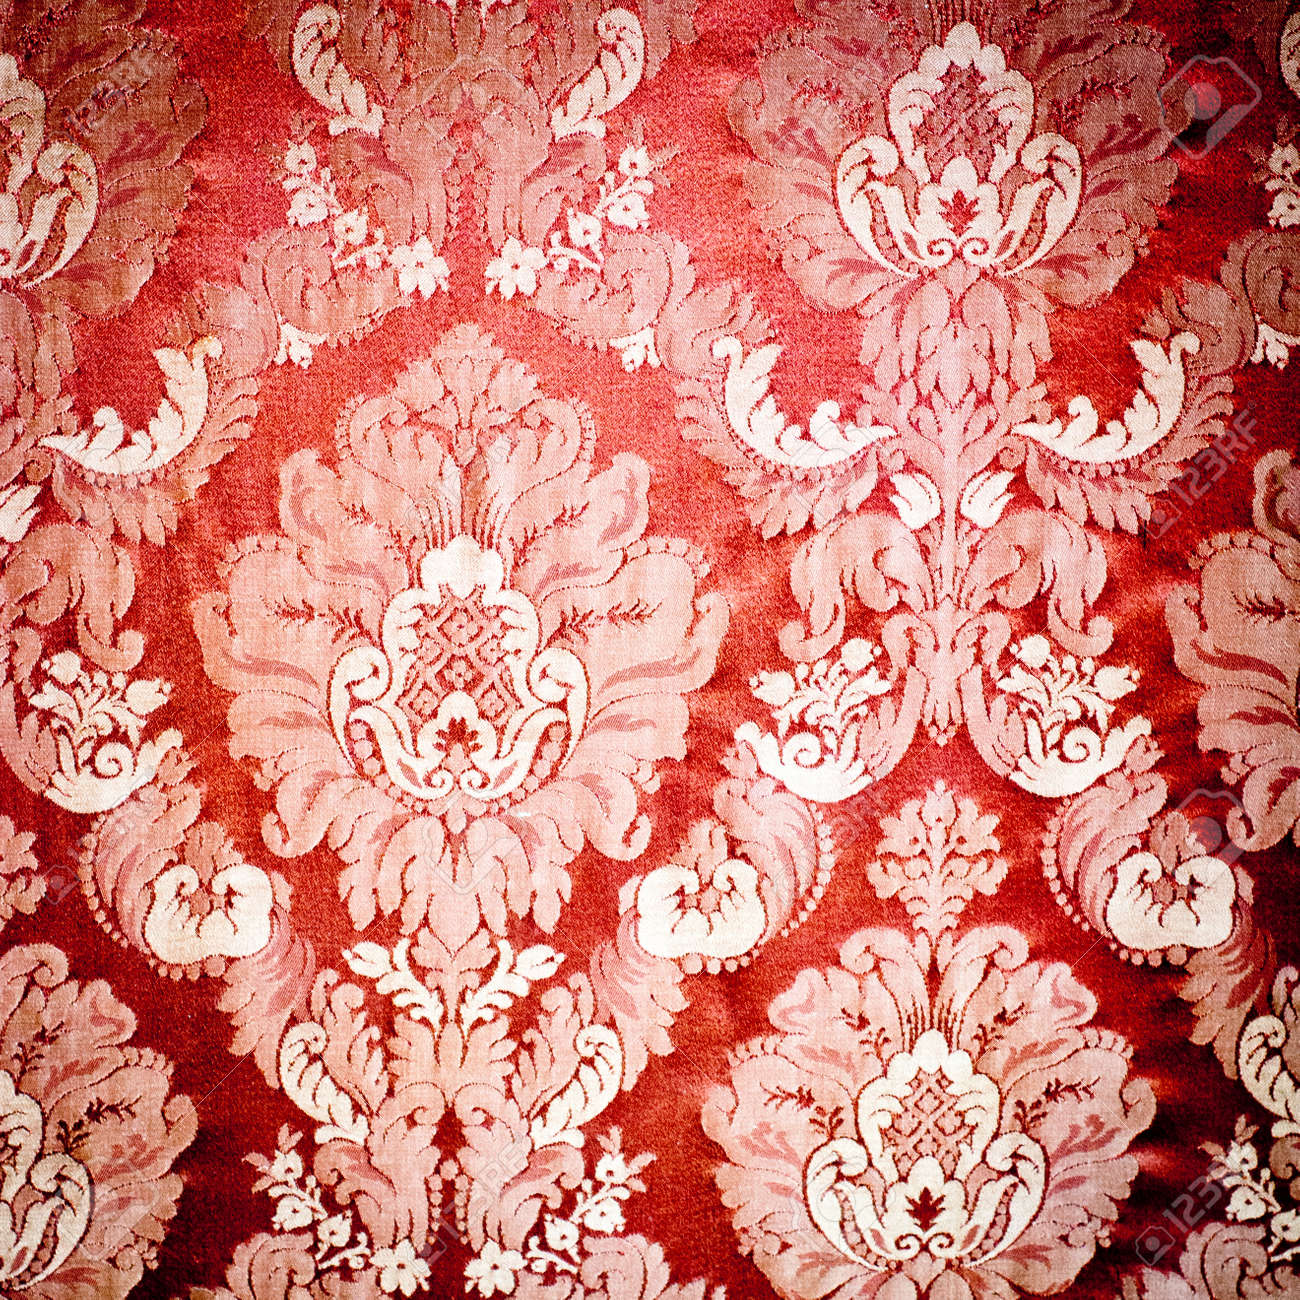 Stock Photo - Vintage damask background wallpaper. Red tapestry fabric.